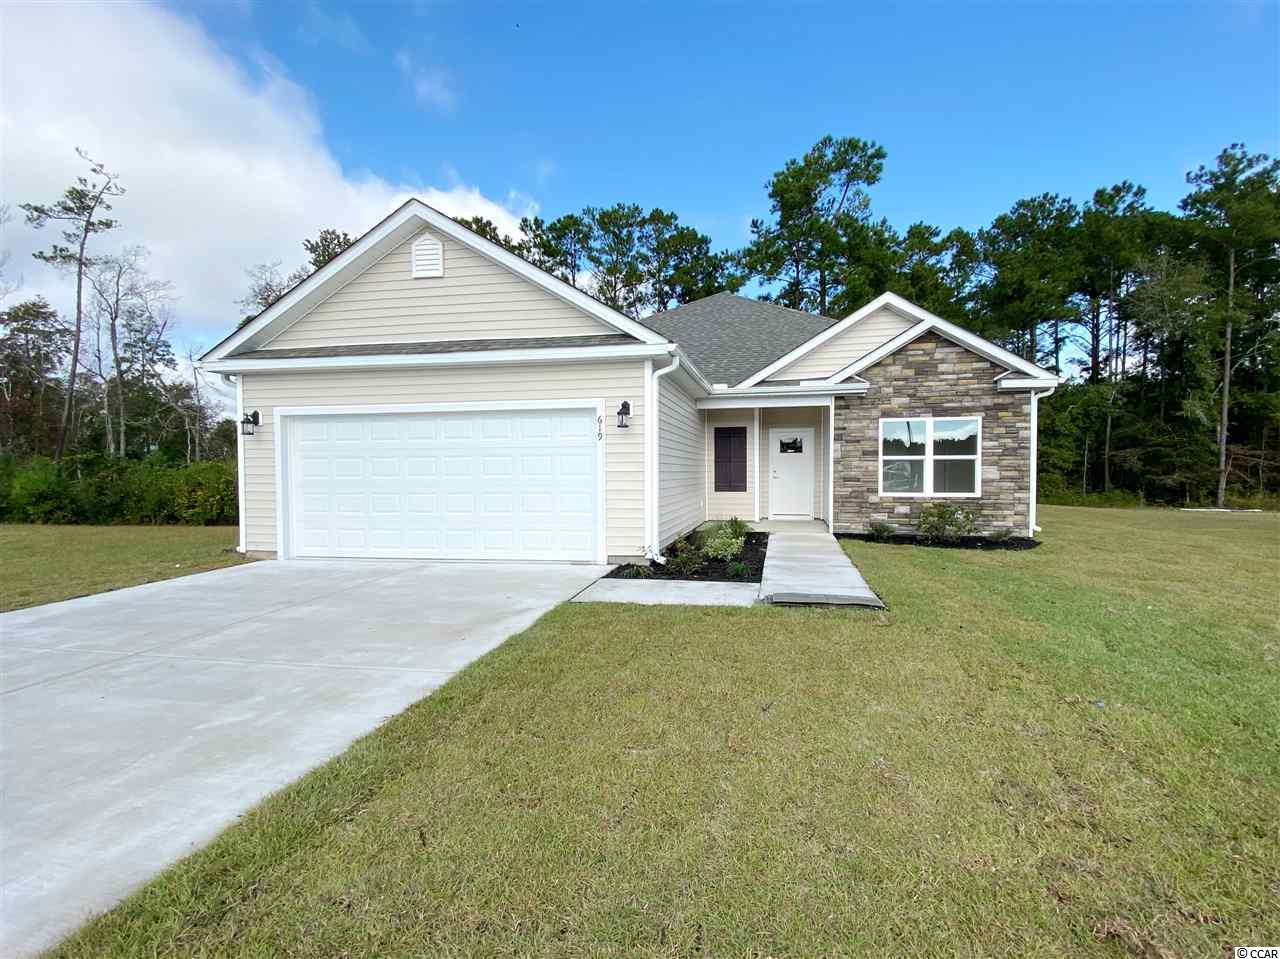 New Constuction Community in a prime location right next to International Blvd and Highway 22. Conveniently located to some of the finest dining, shopping, golf, beaches, schools, hospitals, and downtown Conway, Myrtle Beach, and North Myrtle Beach. Be the first to own this Carson, model with a spacious open floor plan of the main living areas, with vinyl plank flooring and crown molding throughout. The kitchen comes with stainless steel appliances, upgraded soft close cabinets with granite countertops, a gas range, large work island with a breakfast bar, and pantry for extra storage. The master suite includes double sink vanities and two large walk-in closets. Each bedroom includes a ceiling fan and plenty of closet space, with easy access to the second bathroom. Other features include 9' ceilings on the first floor, an optional gas HVAC system, tankless gas water heater, wifi thermostat, and much more. The Reserve at Heritage Downs will include a large lake with walking trails around it, and large open recreation areas for kids to play. Stop by the model home for more information and ask about the new community and other model homes, upgrades, POOL options. Yes! You can have a pool in your very own back yard.